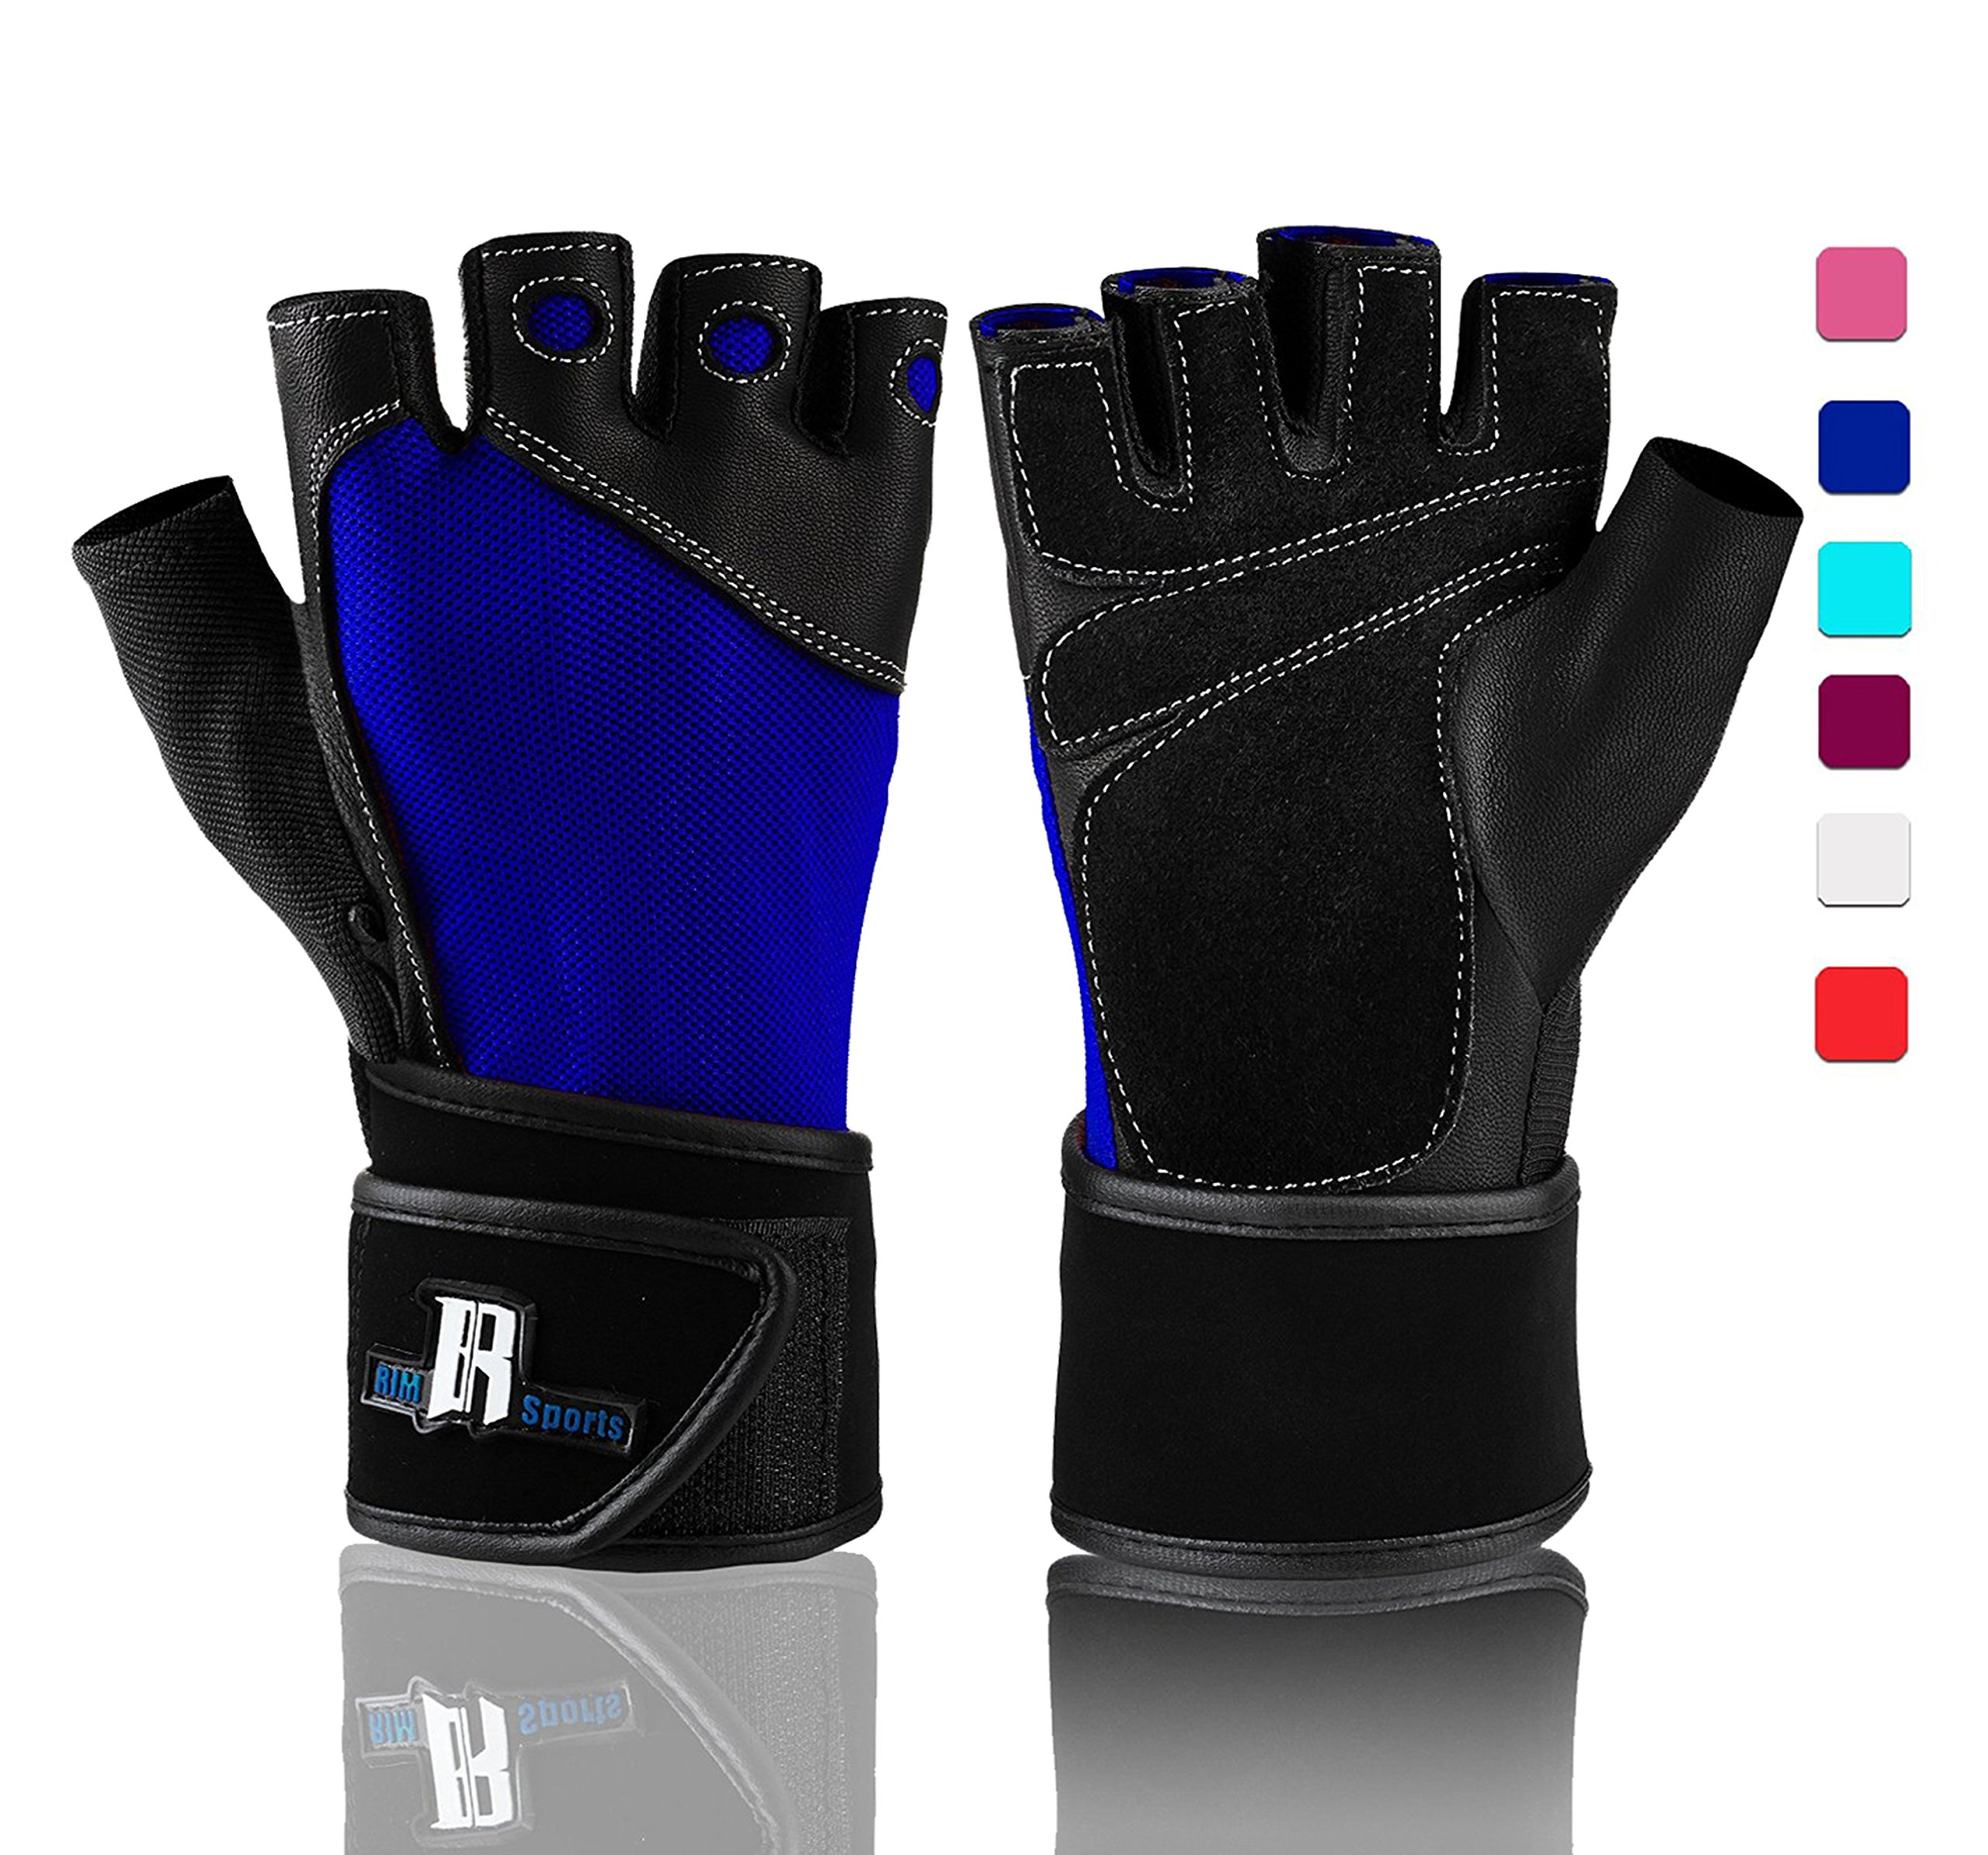 RIMSports Weightlifting Gloves with Wrist Support - Workout Gloves with Wrist Padding for Lifting Weights Cross Training Power Lifting Equipment Gloves, Quality Lifting Gloves (Blue XS)